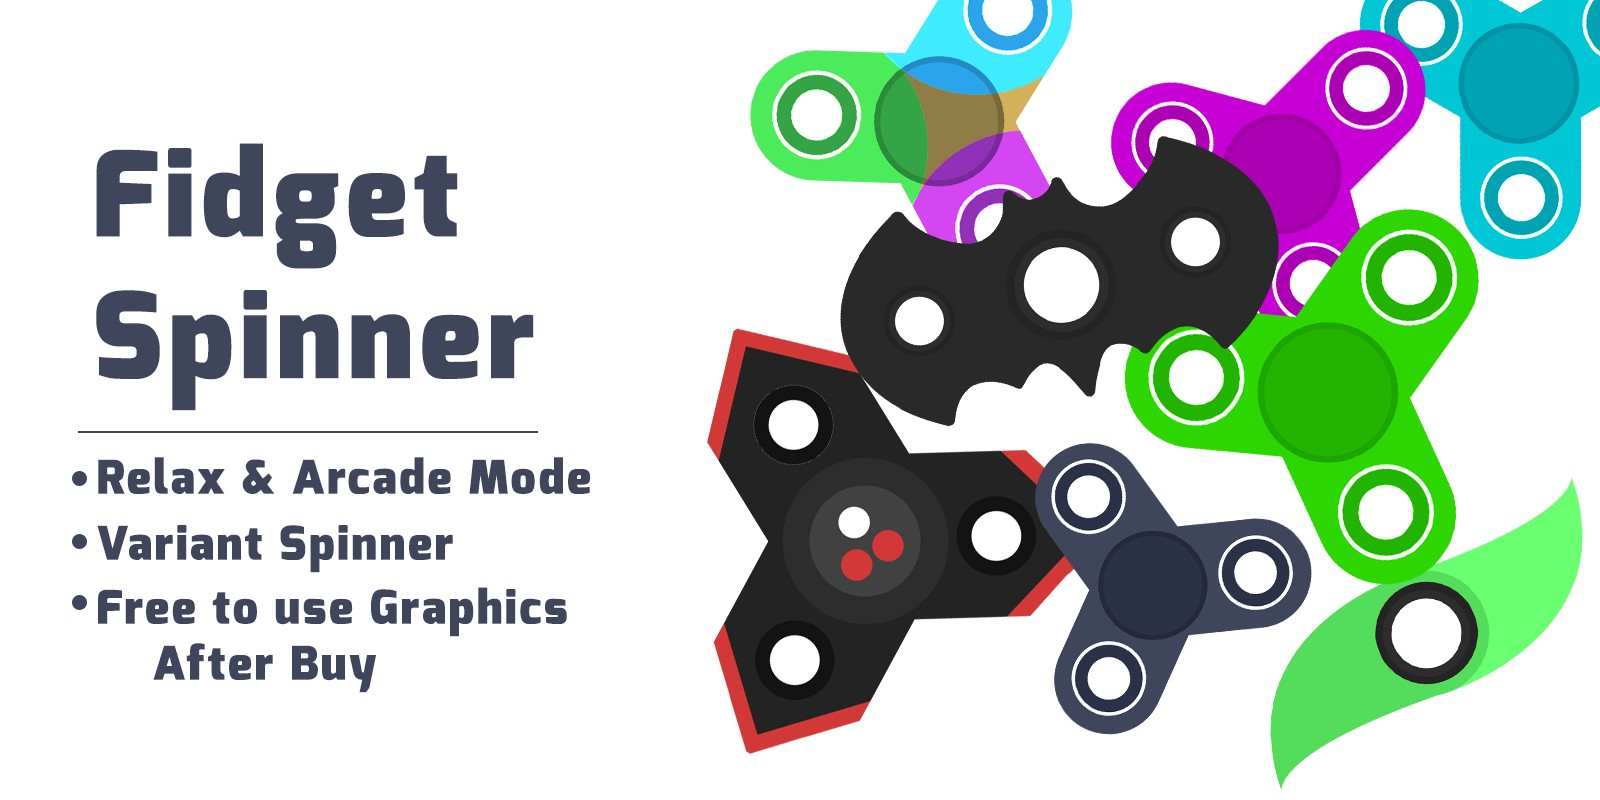 Fidget Spinner - Complete Unity Project